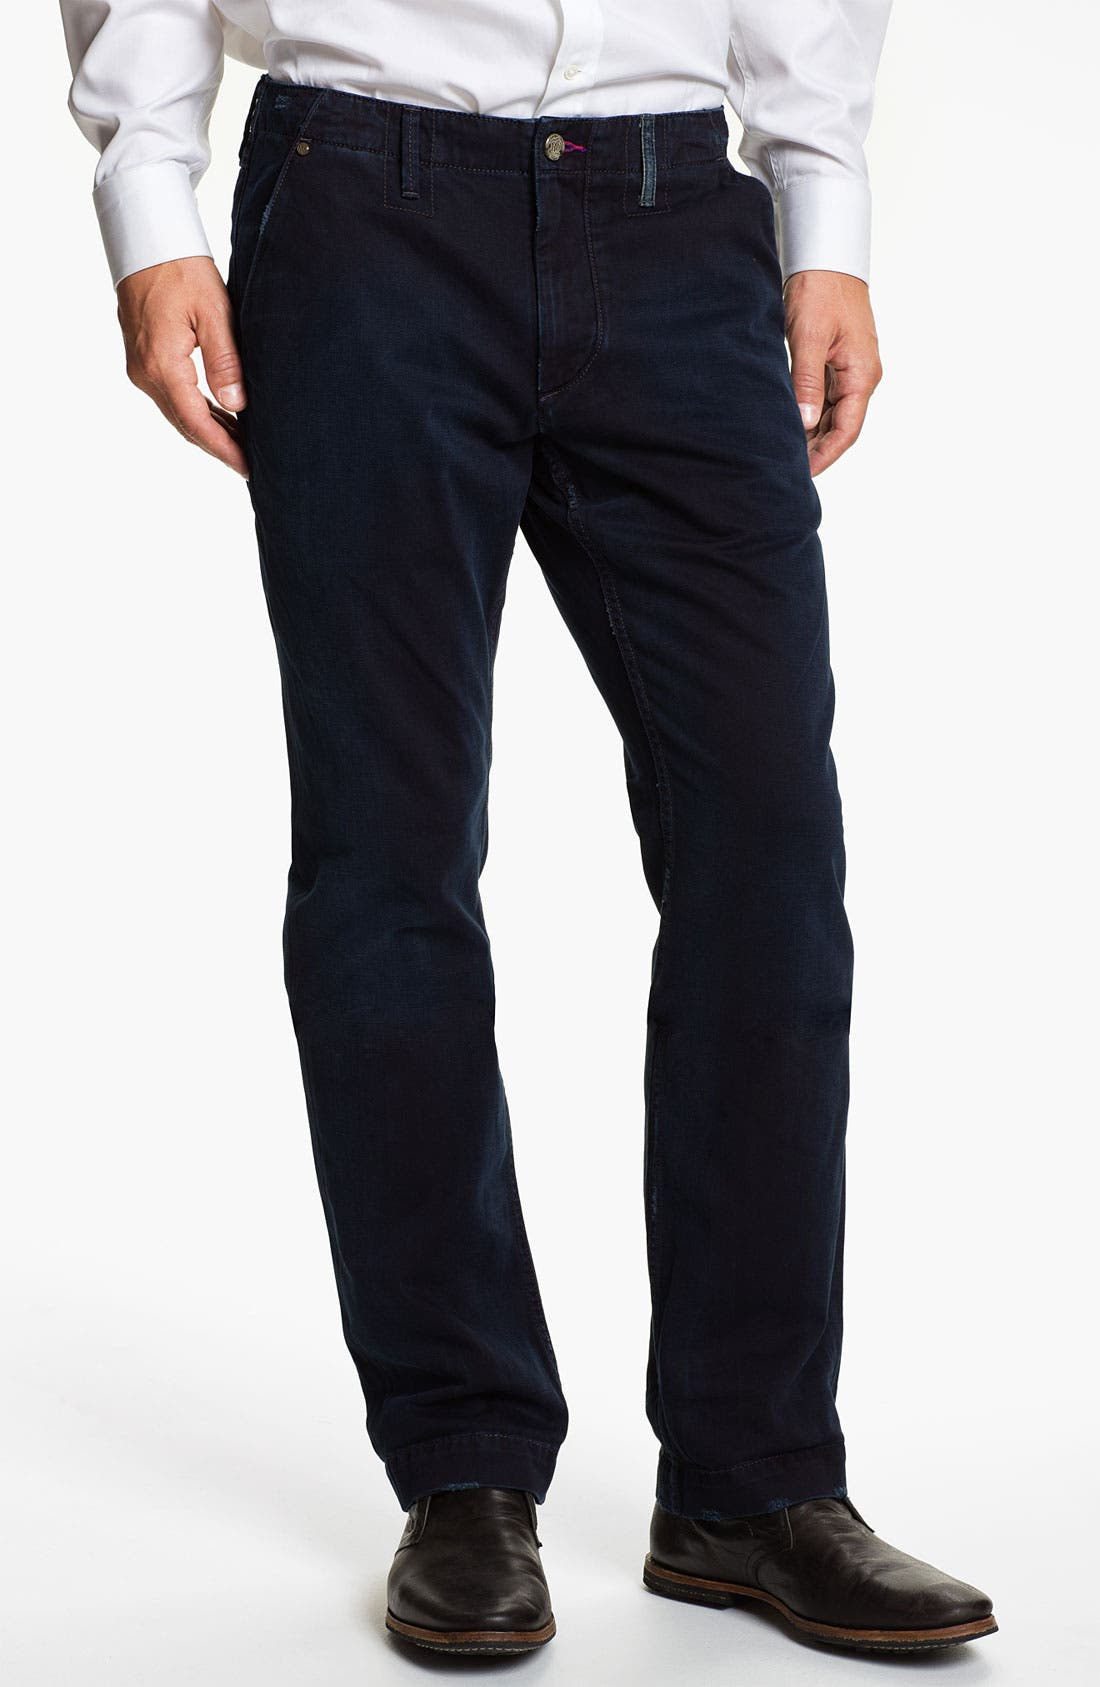 Main Image - Robert Graham Jeans 'Blue Tar' Classic Fit Straight Leg Chinos